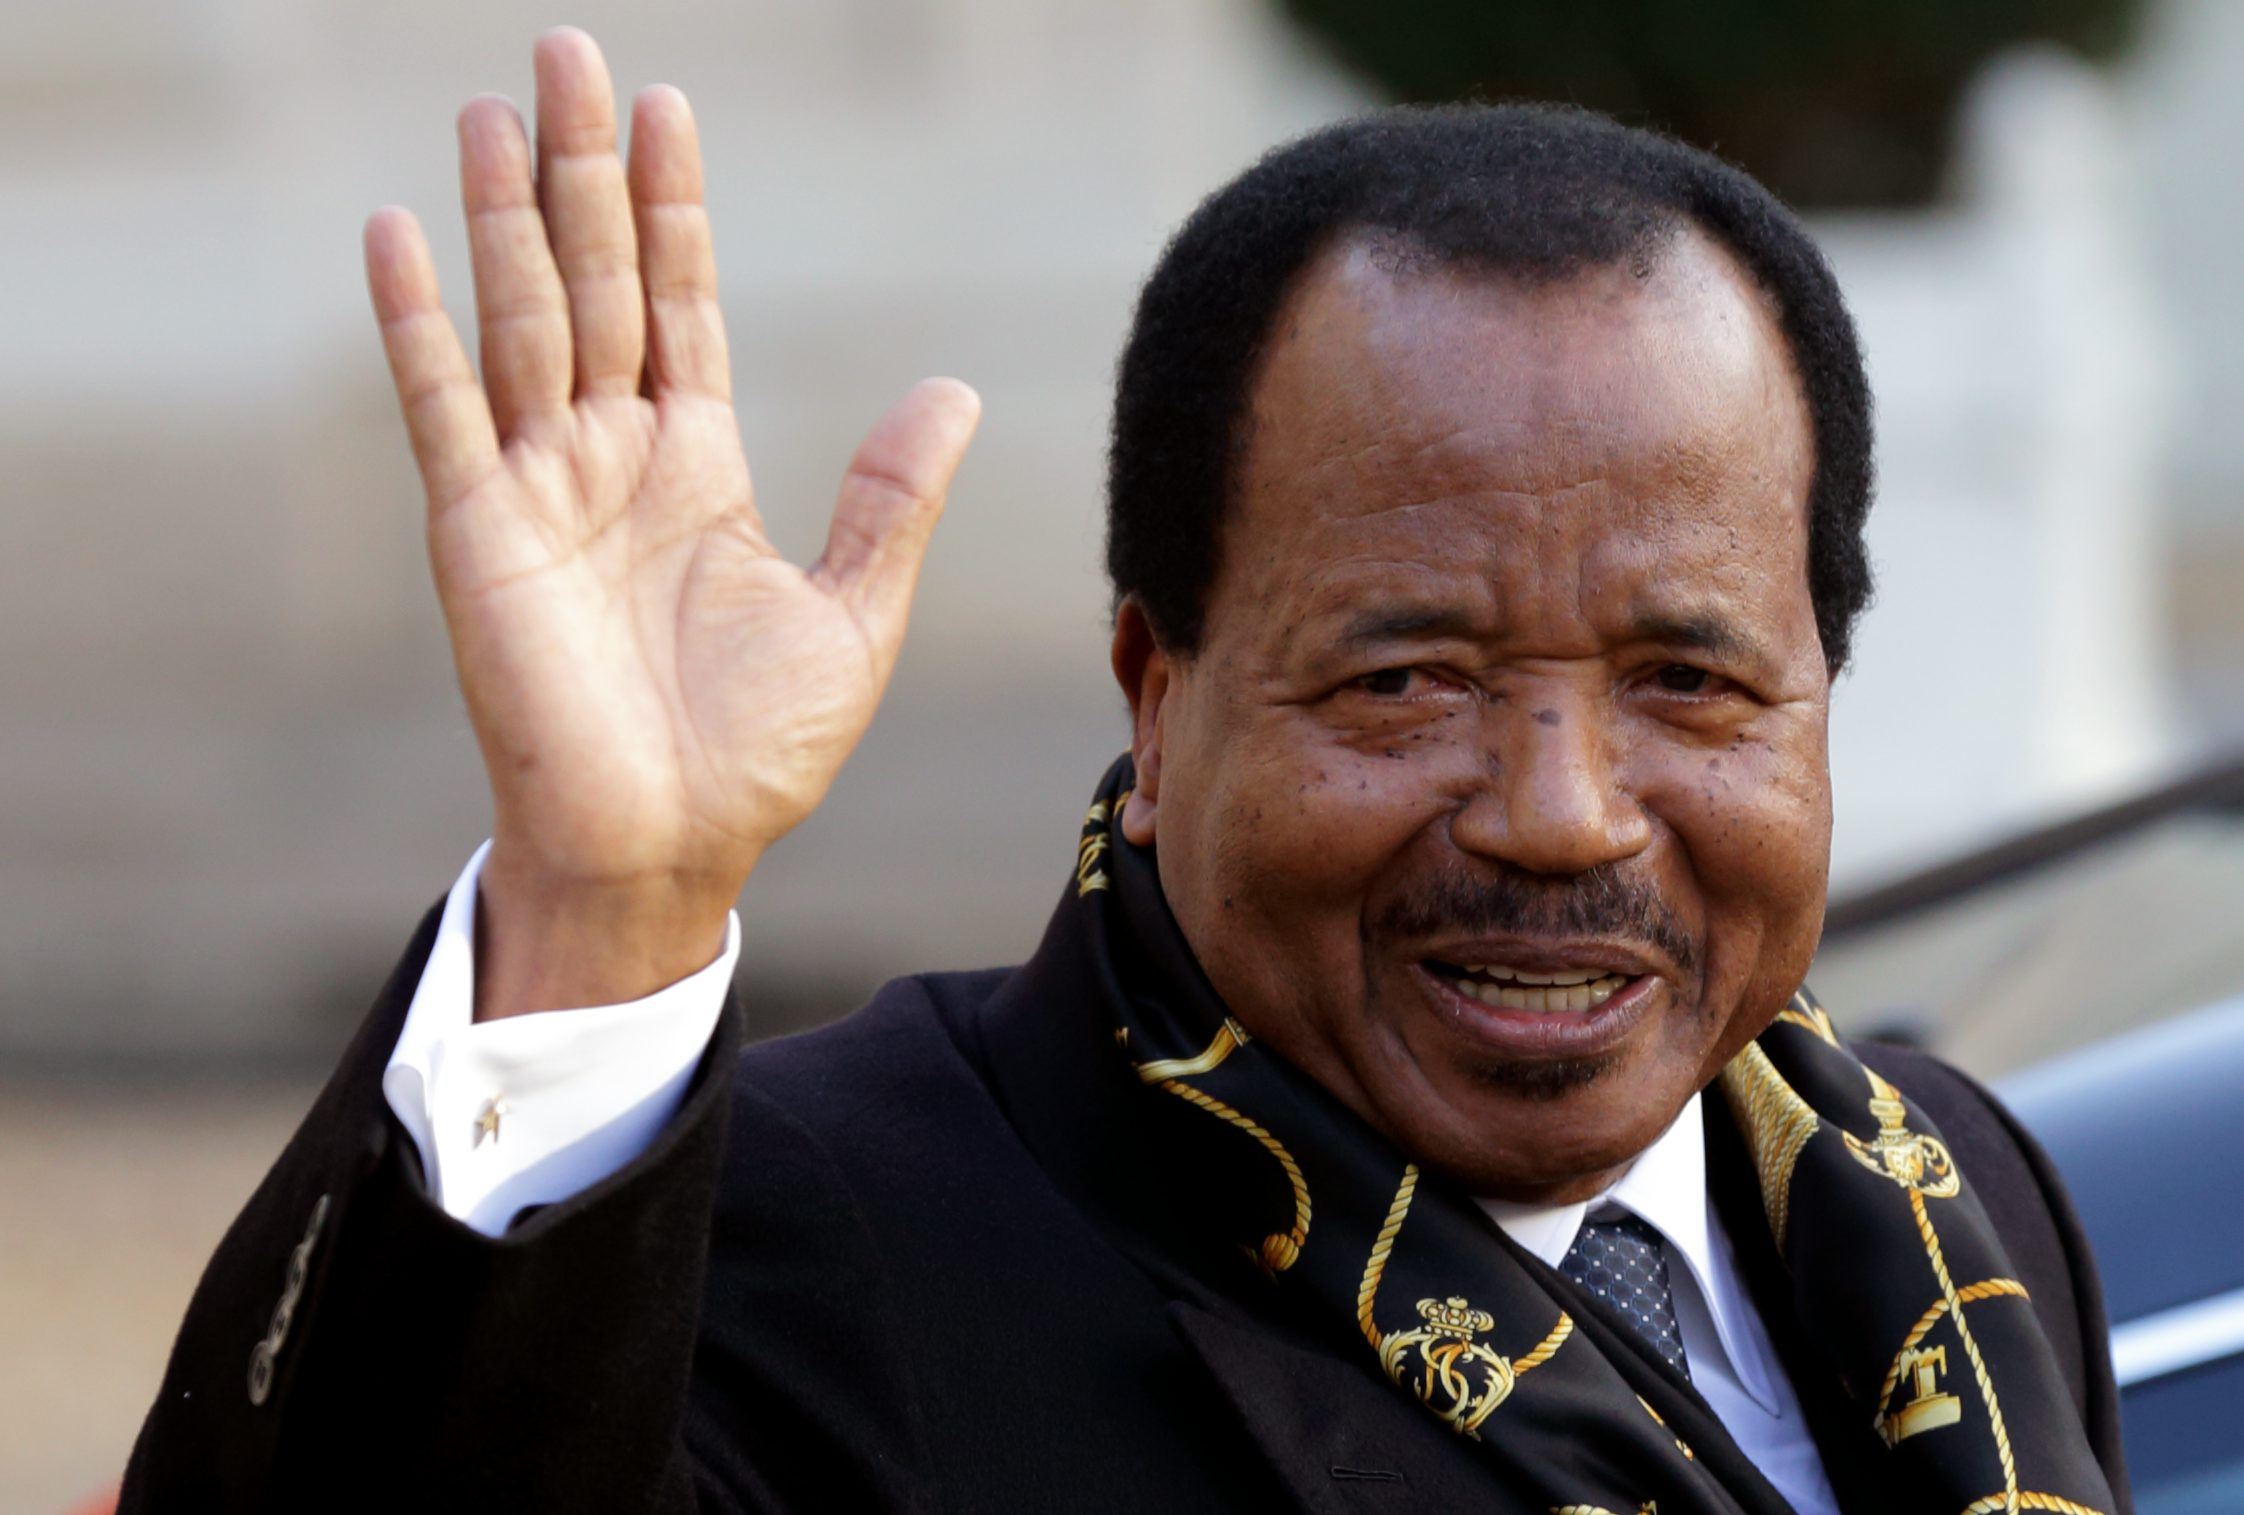 Cameroon's President Paul Biya waves as he leaves following a meeting at the Elysee Palace in Paris, January 30, 2013.